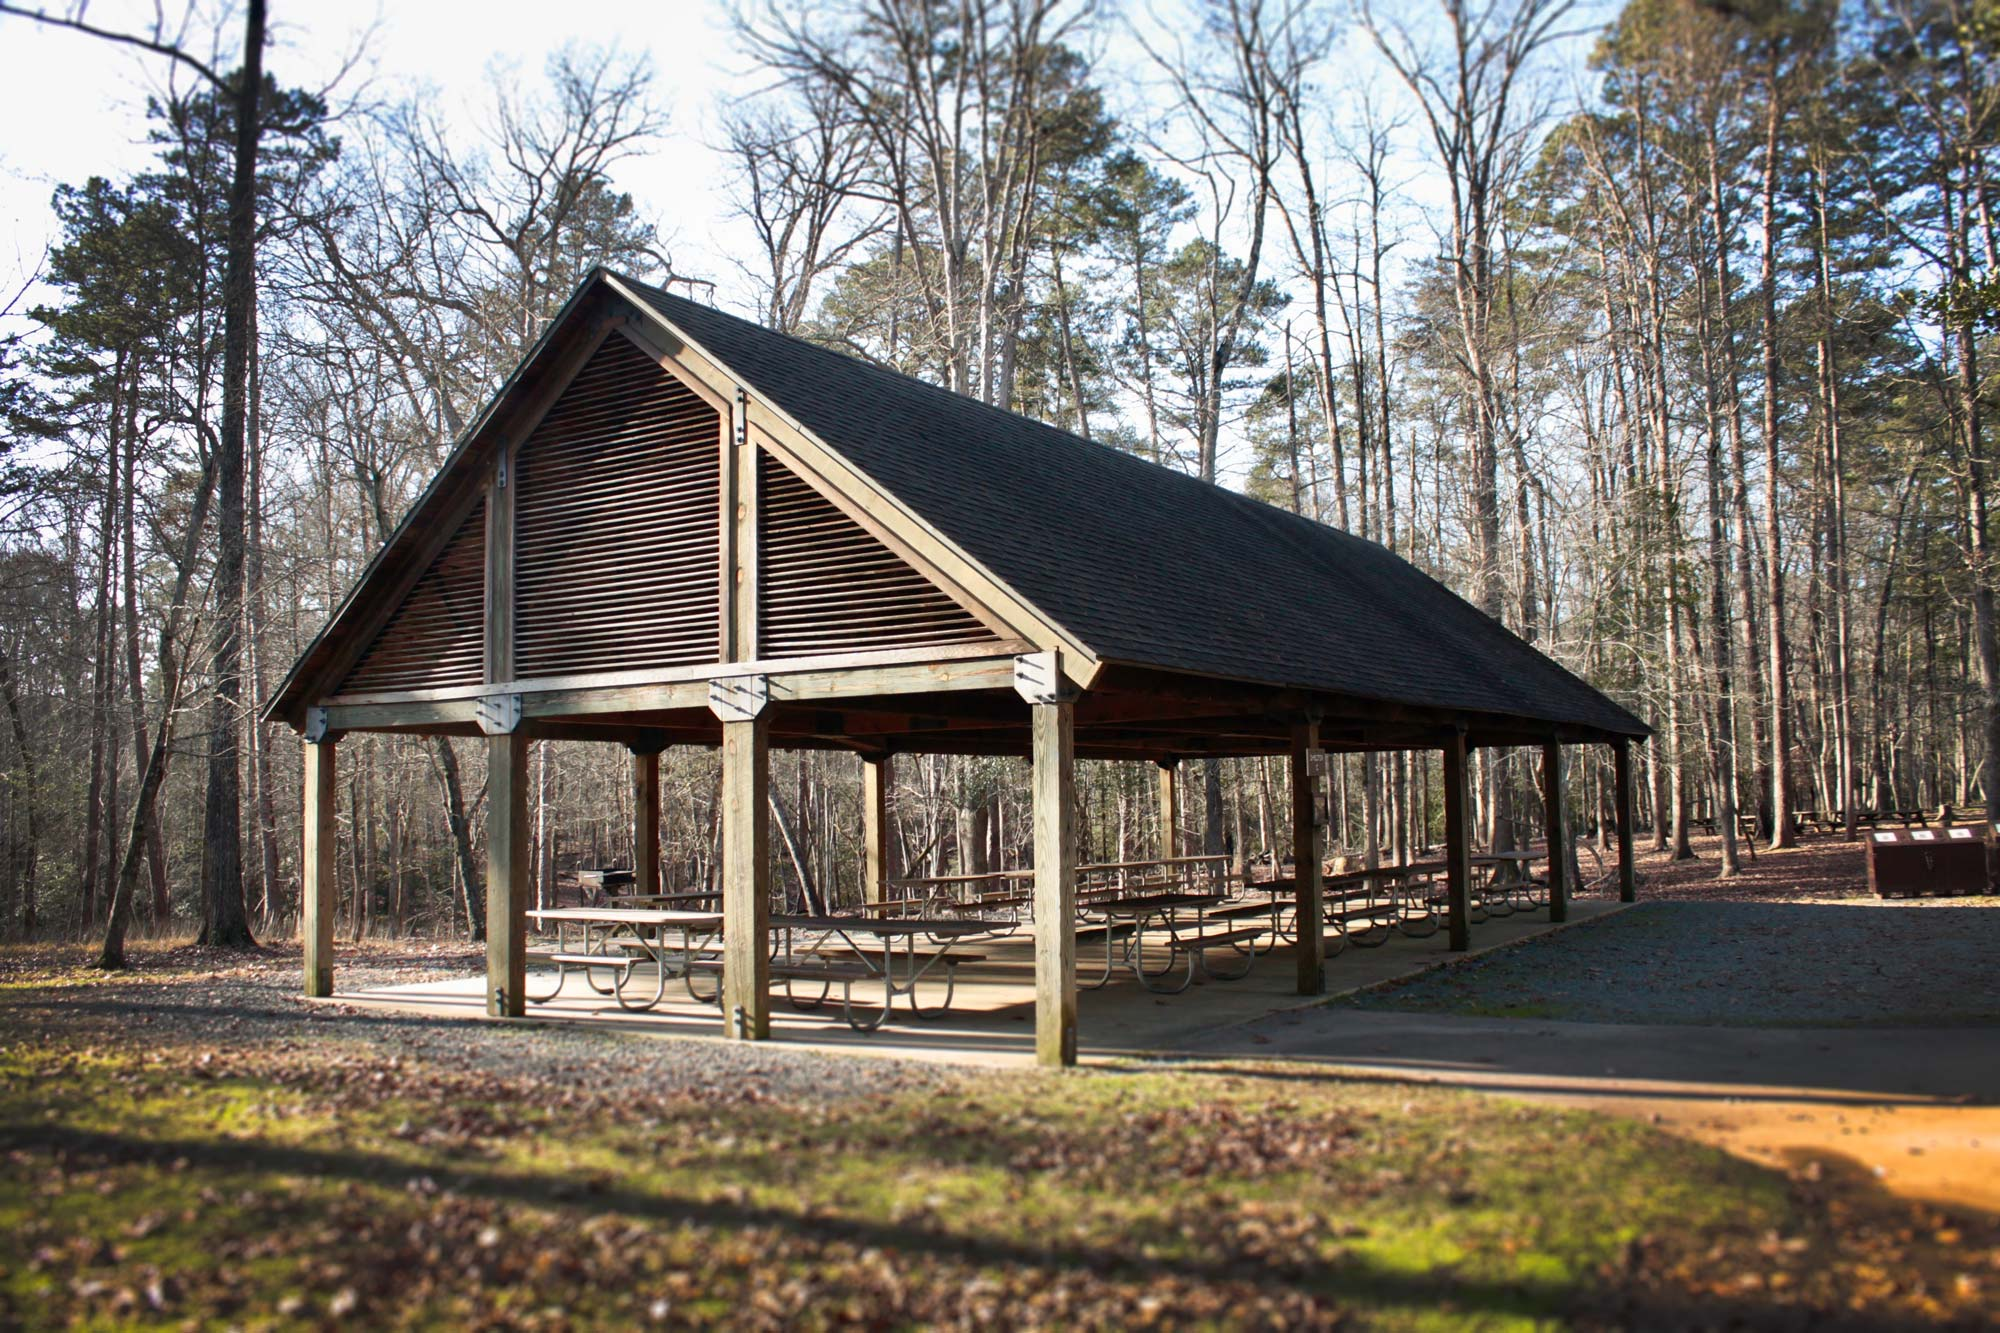 Picnic shelter near the Quarry Trail  in Morrow Mountain State Park, North Carolina